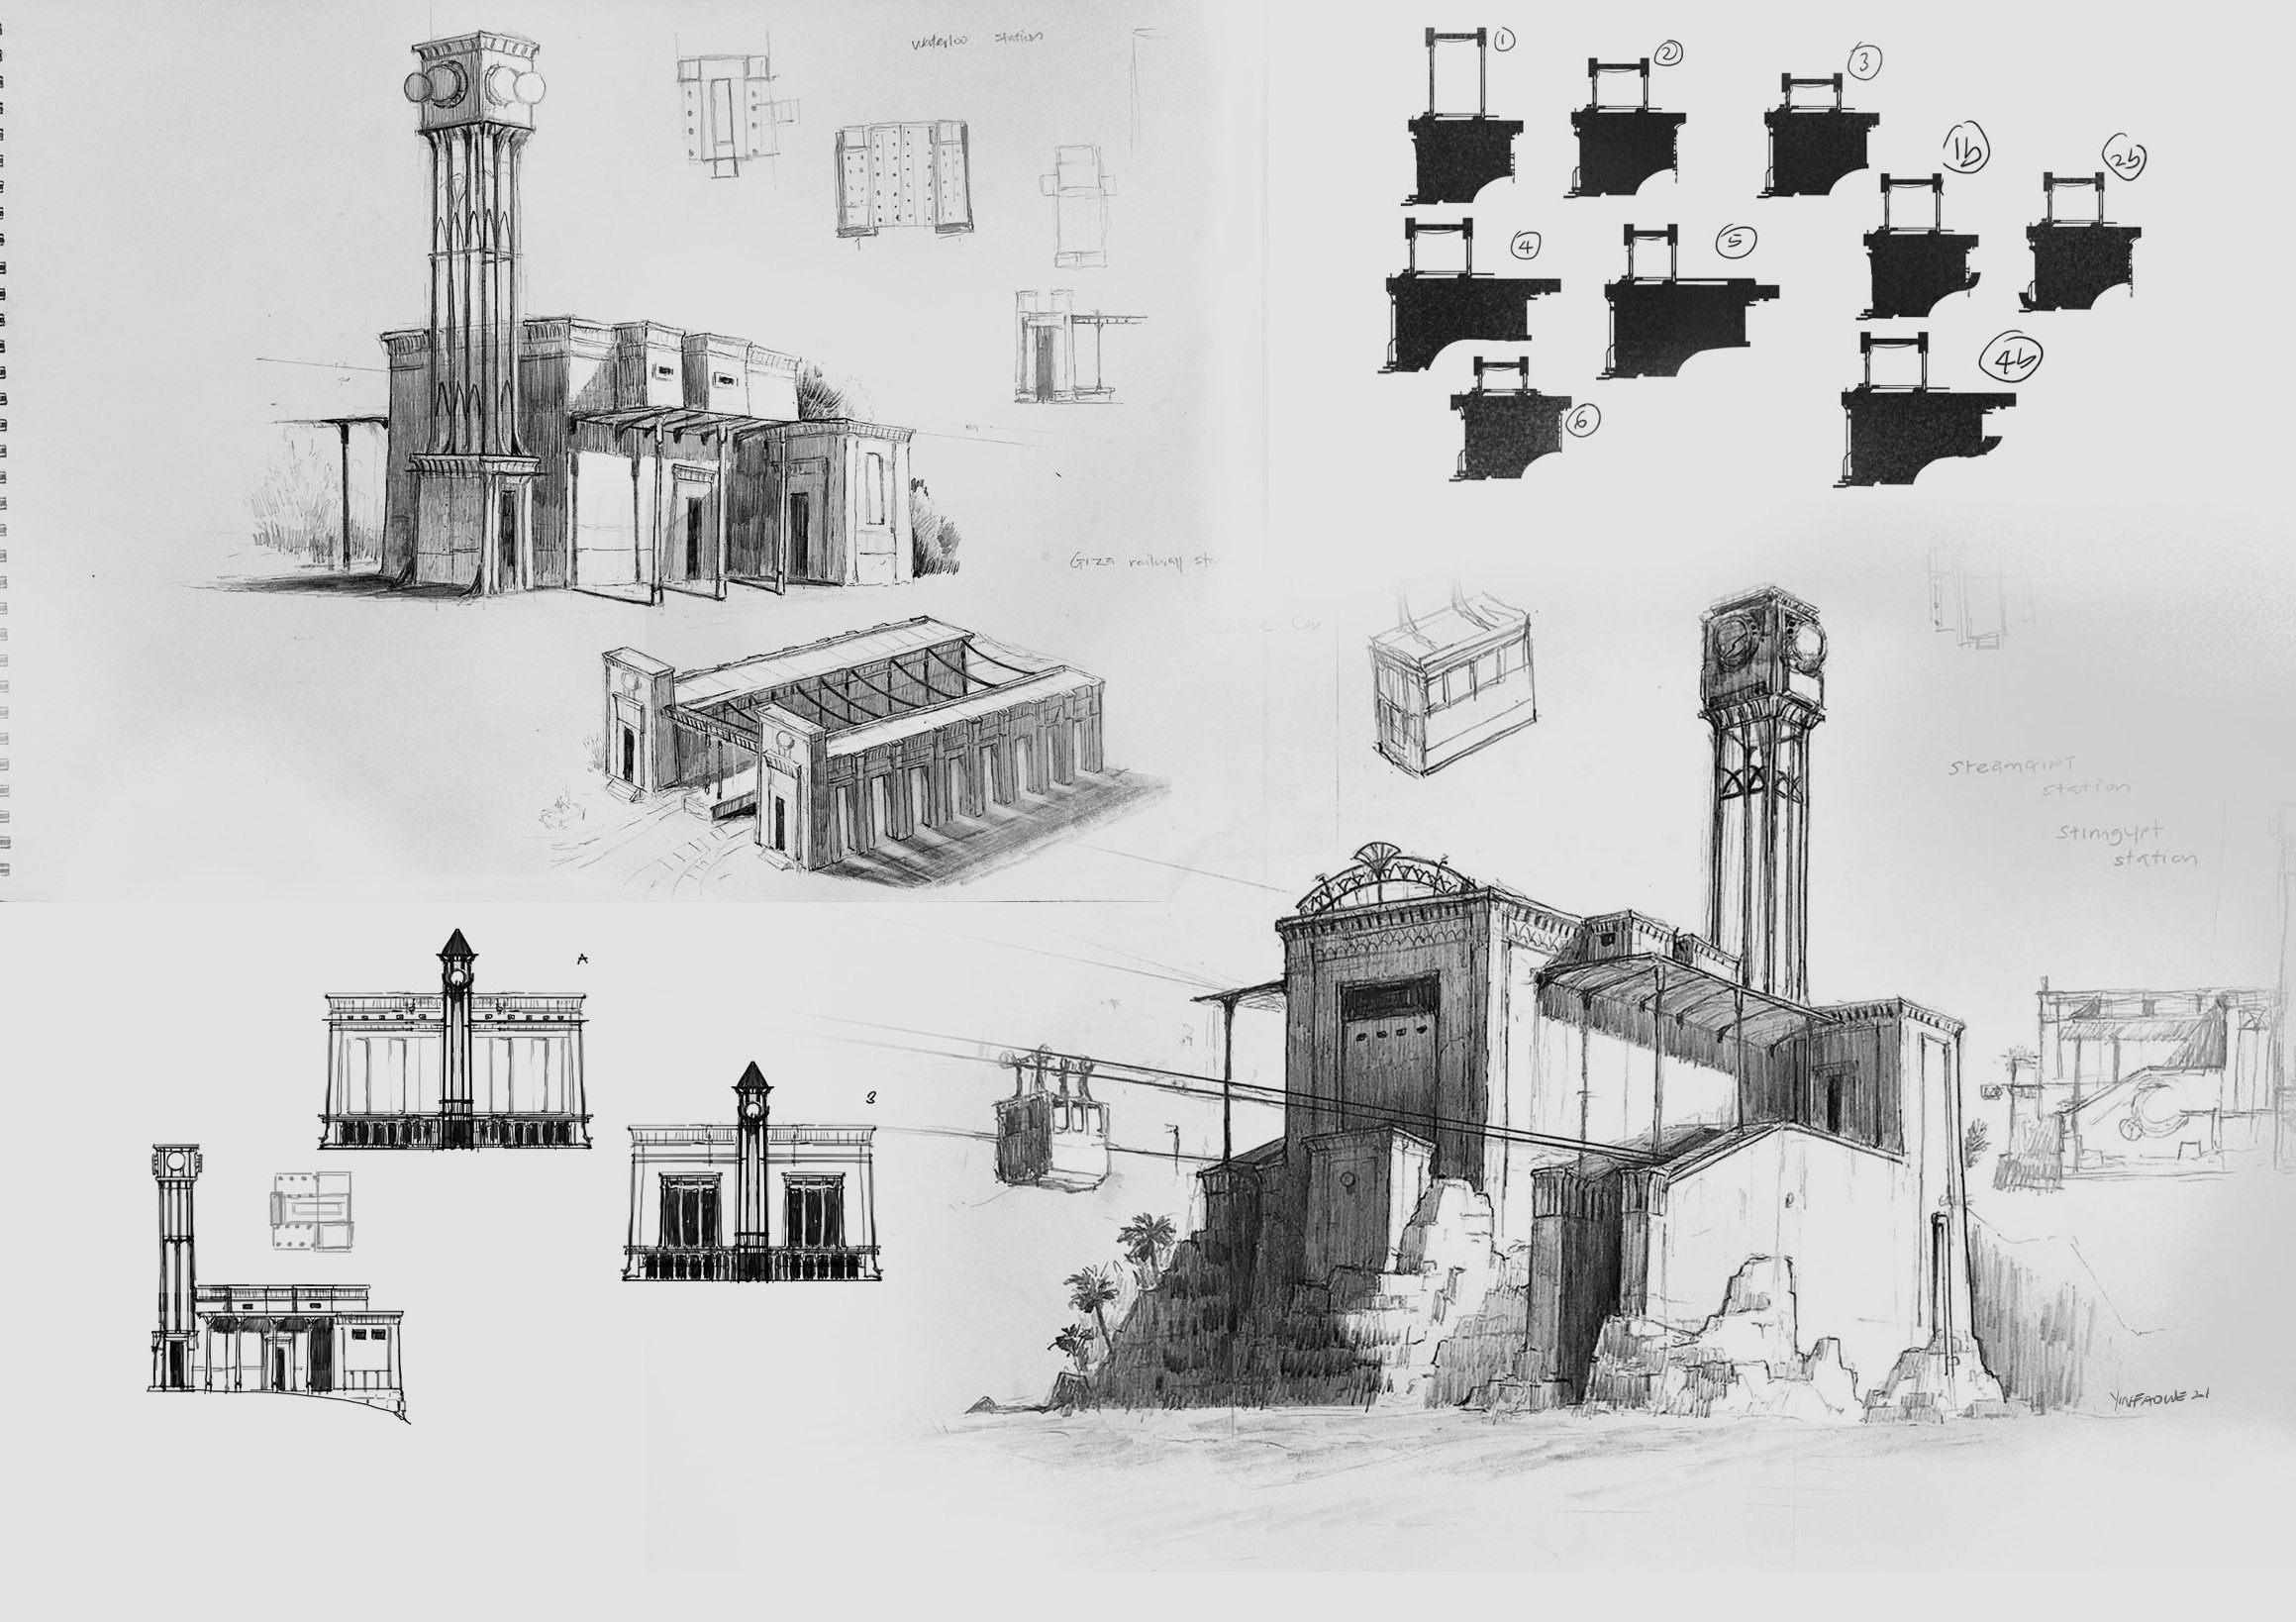 early pencil sketches and exploration